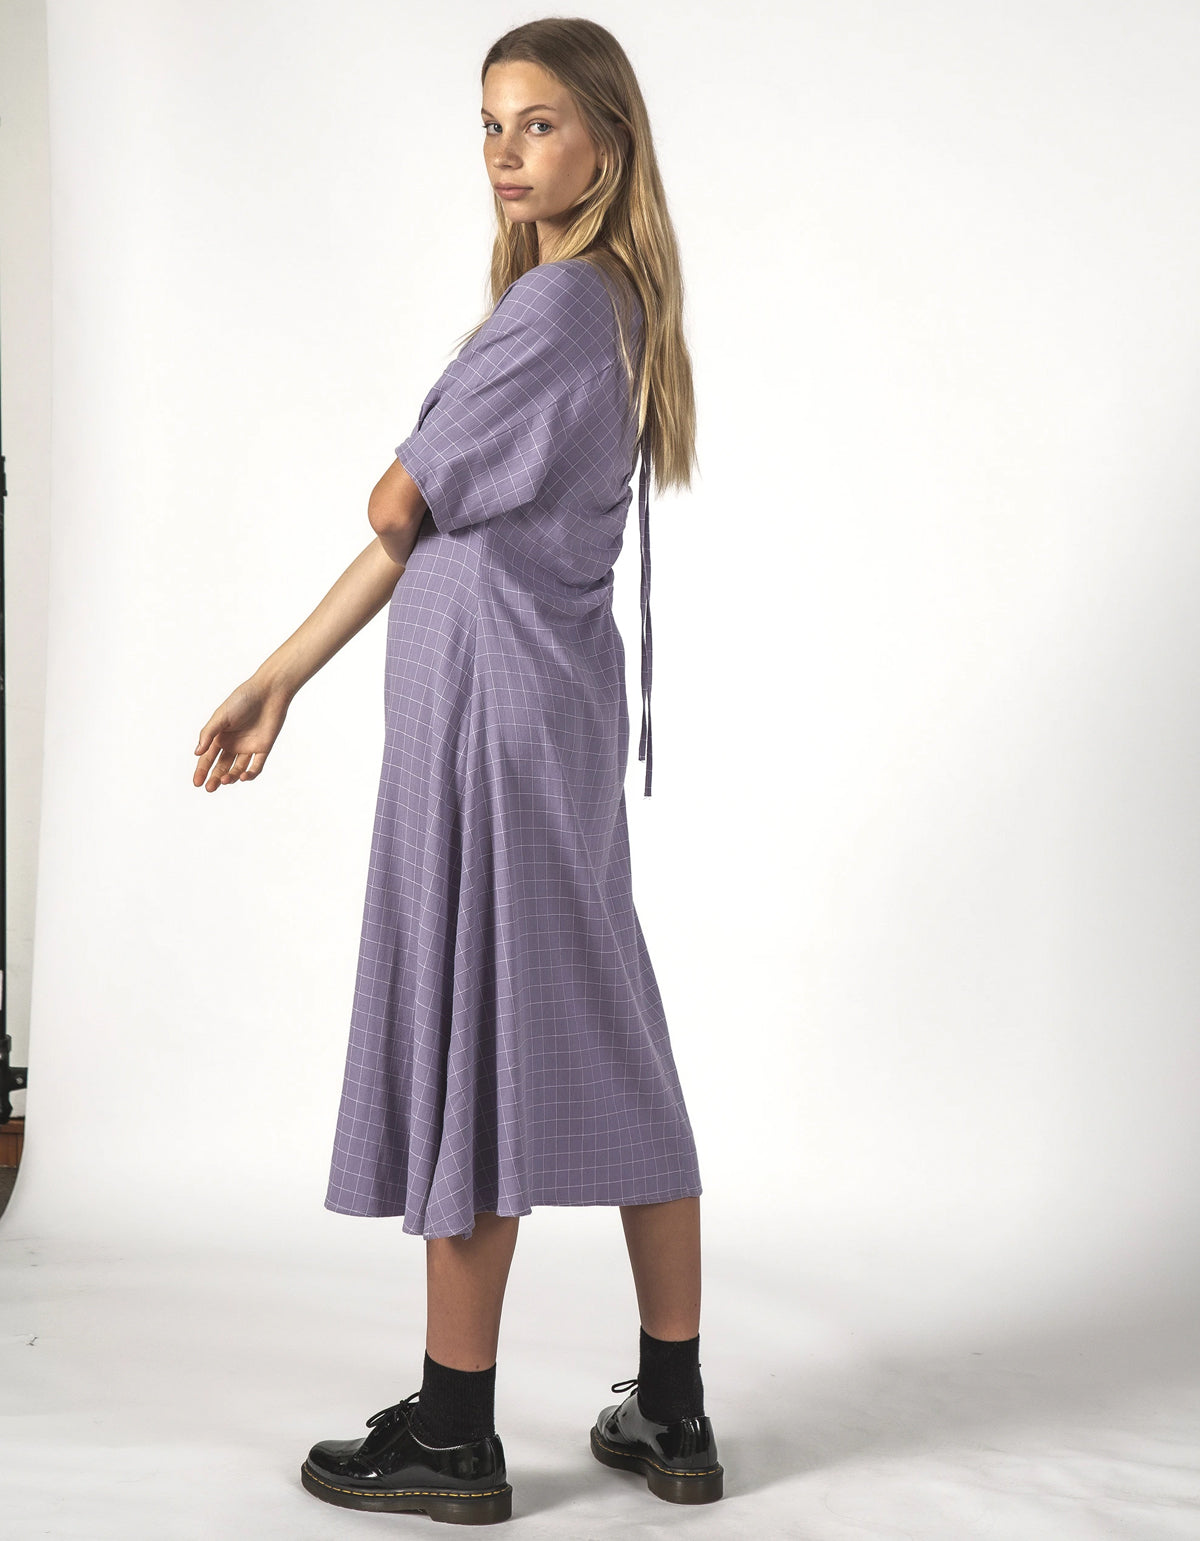 Thing Thing Flurry Dress Lavender Grid